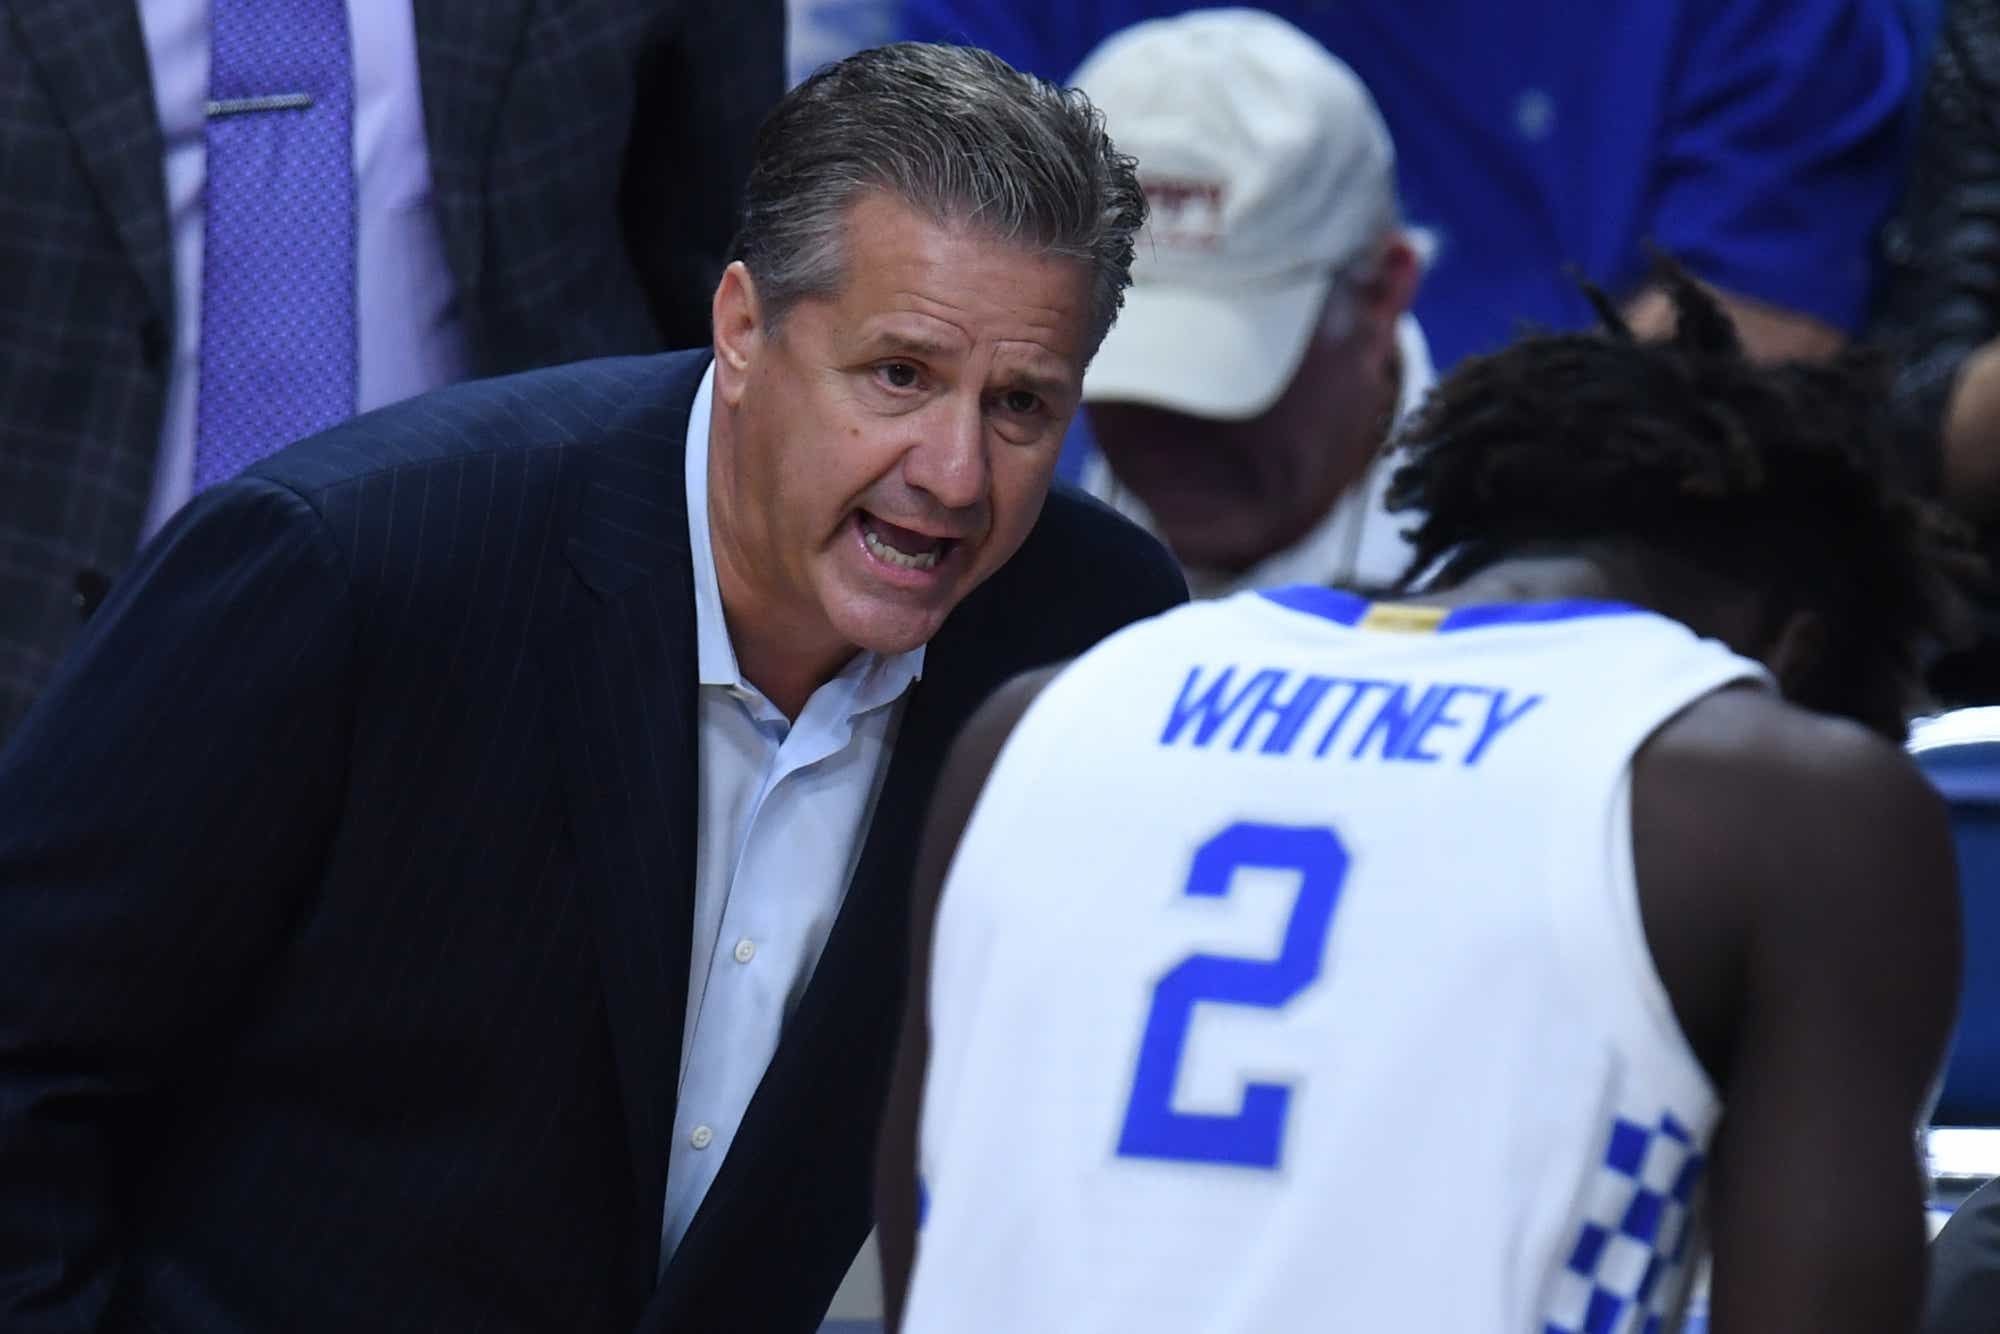 Kentucky basketball: TV channel, online streaming for UK vs. UAB